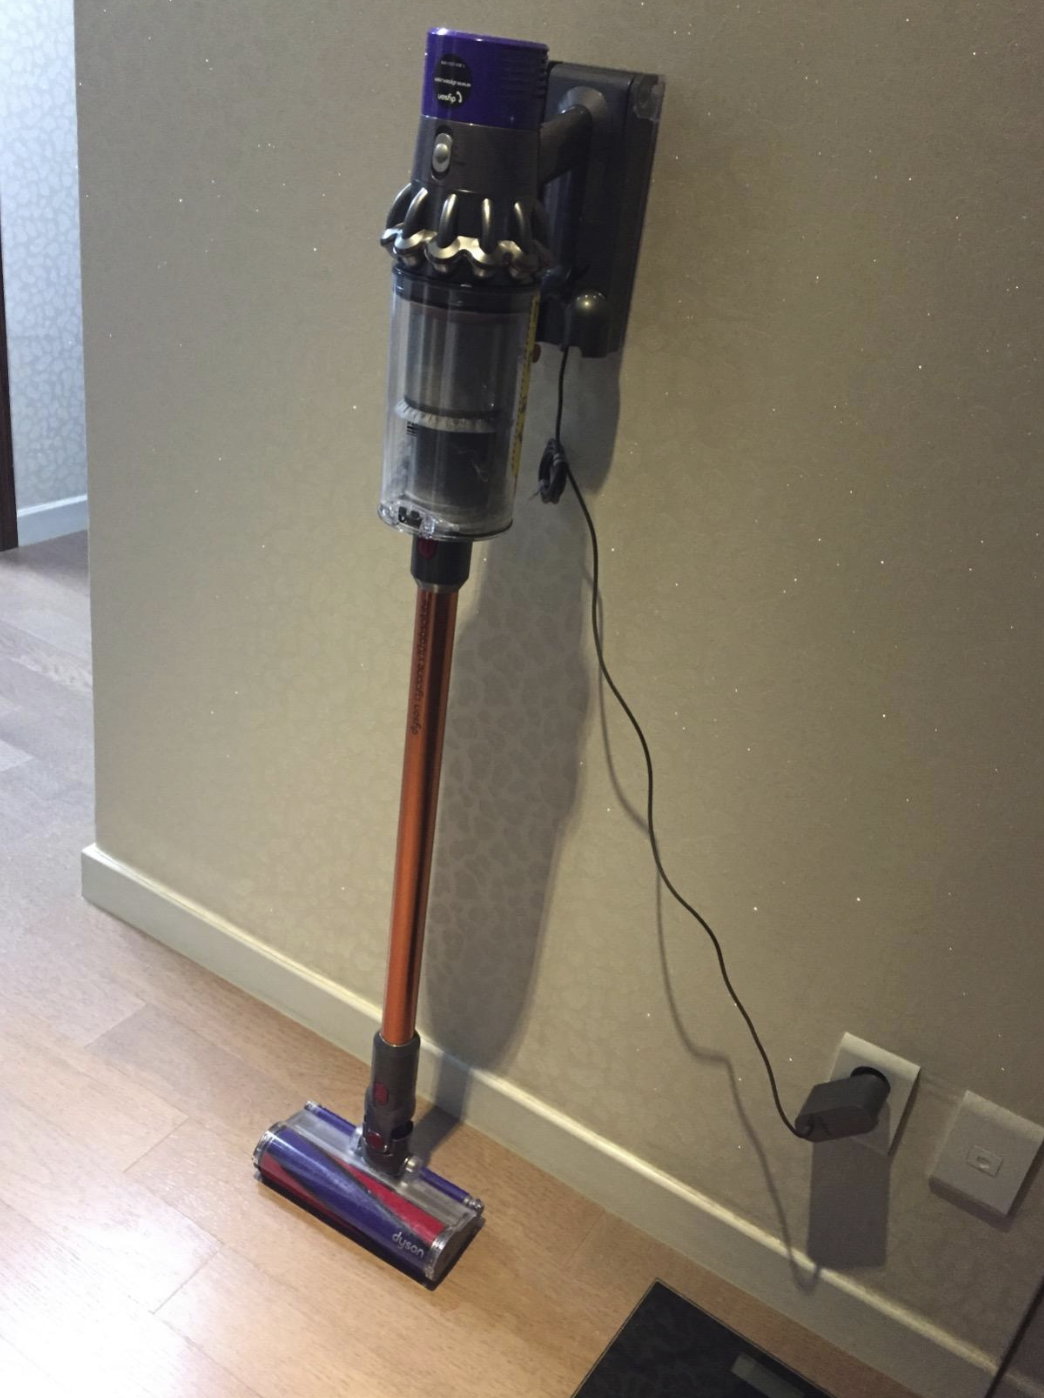 the dyson vacuum which is skinny like a broom and has a rectangular suction at the bottom. It's plugged up in the wall.